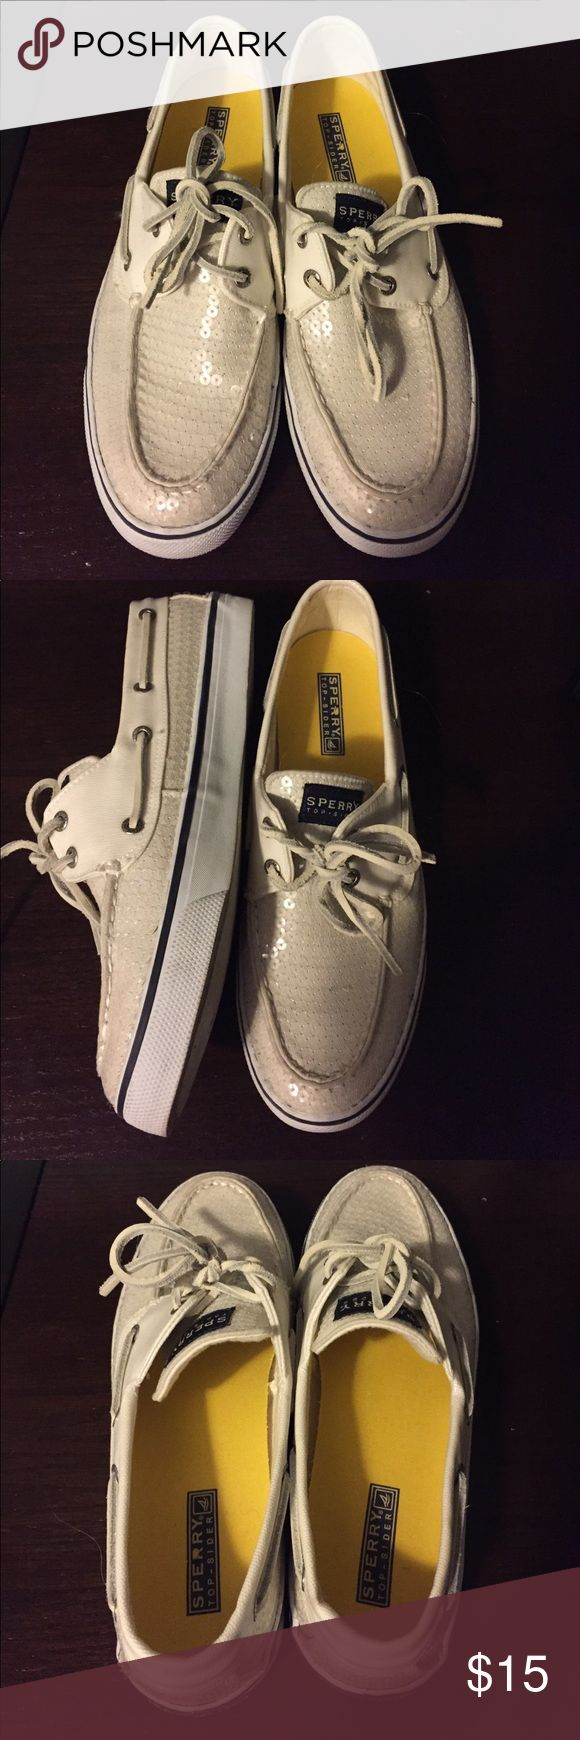 Sperry Top-Sider White Boat Shoe Very feminine white boat shoes with a slight sparkle! Sperry Top-Sider Shoes Flats & Loafers